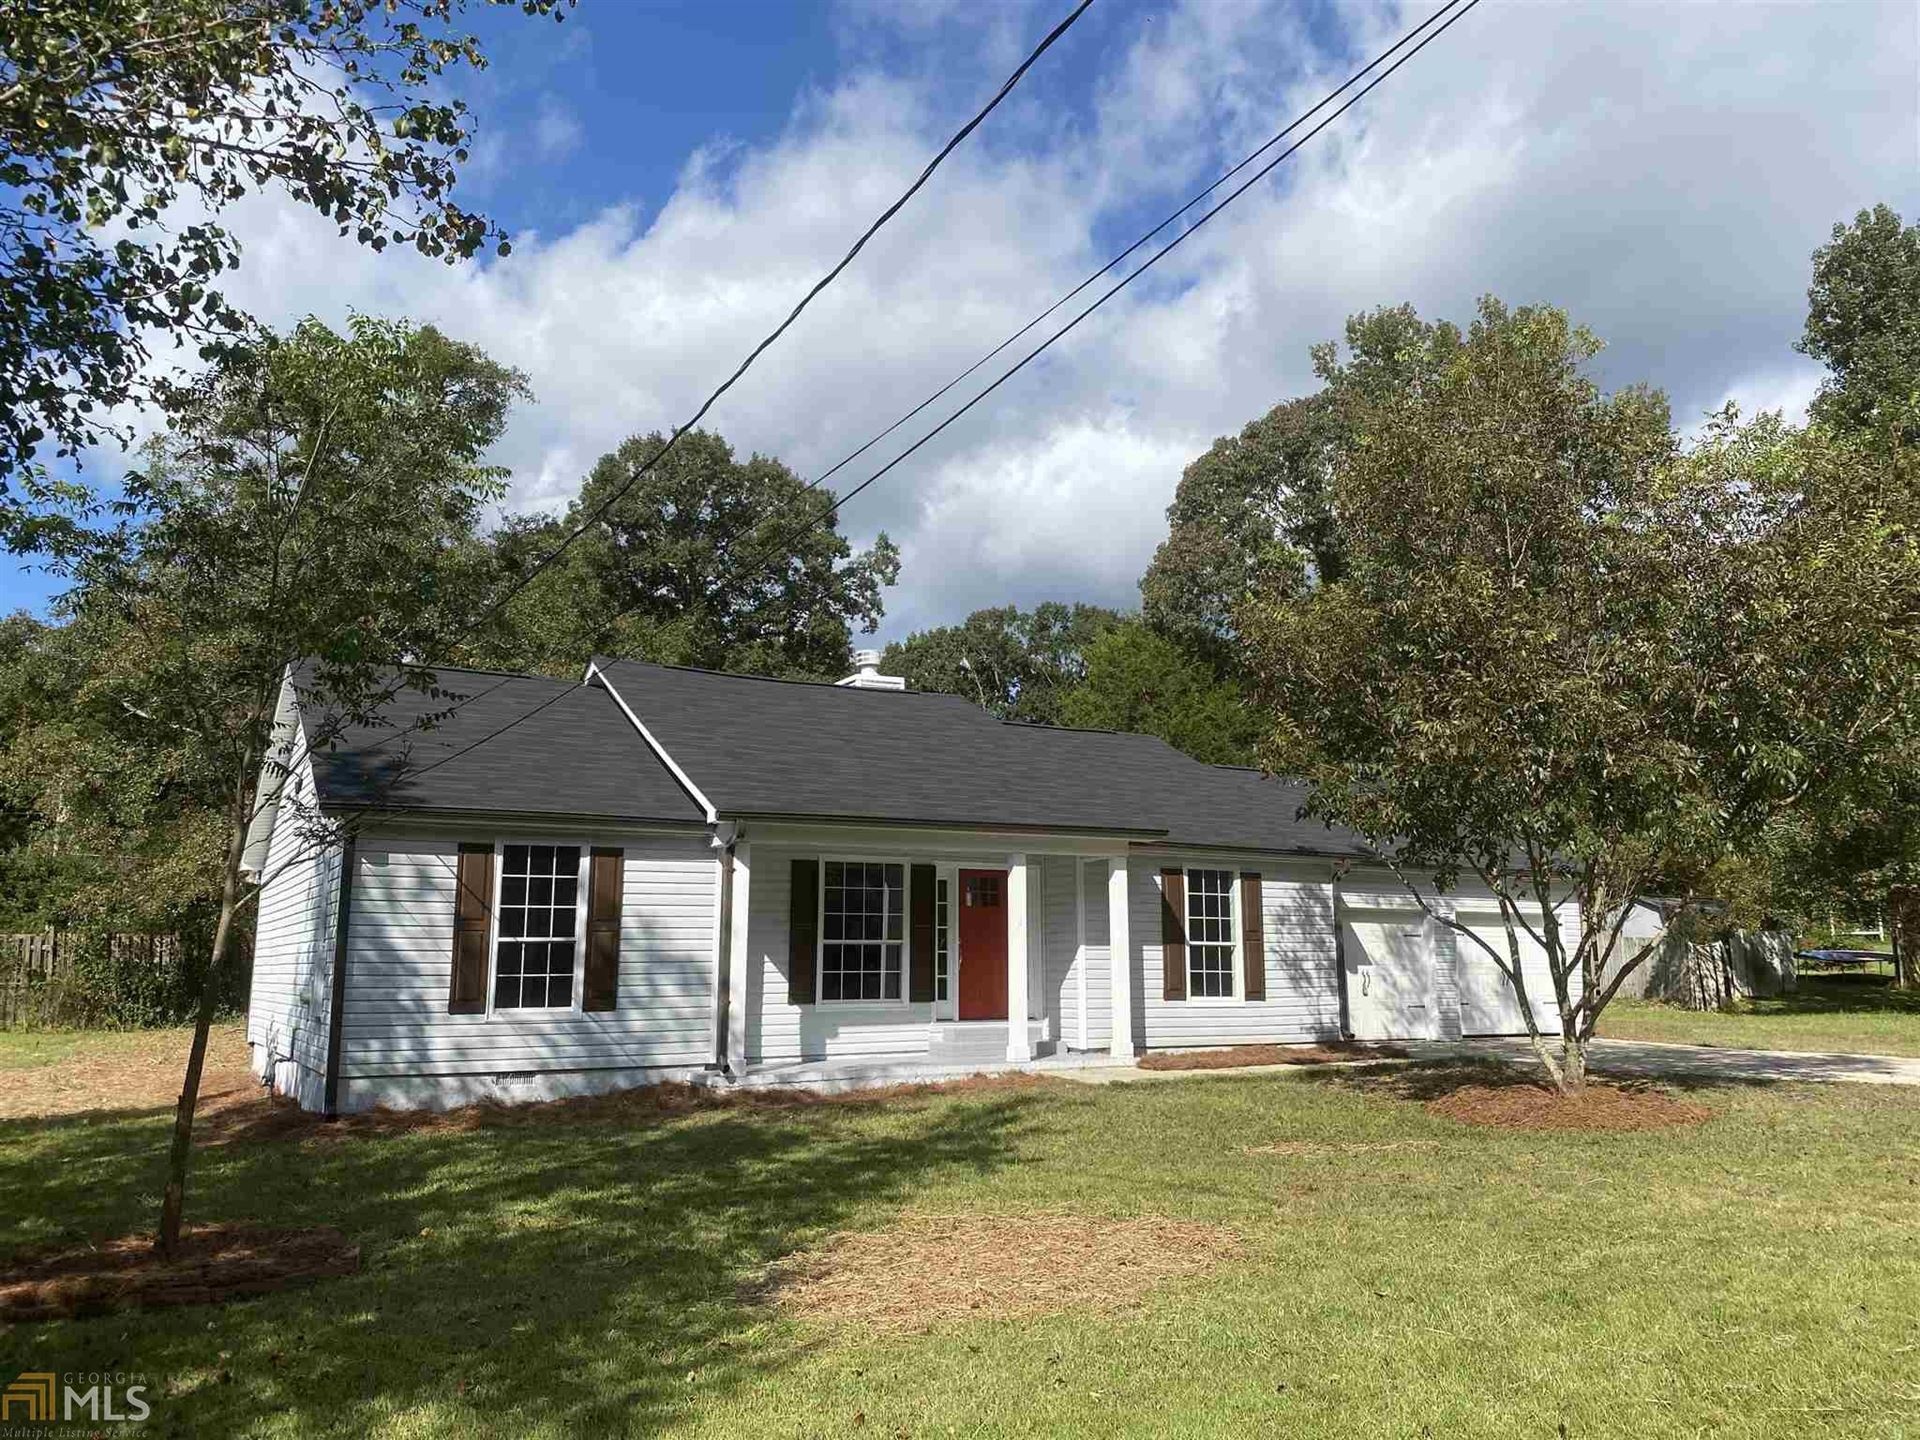 321 Fawnbrook Cir, Griffin, GA 30223 - MLS#: 8873096